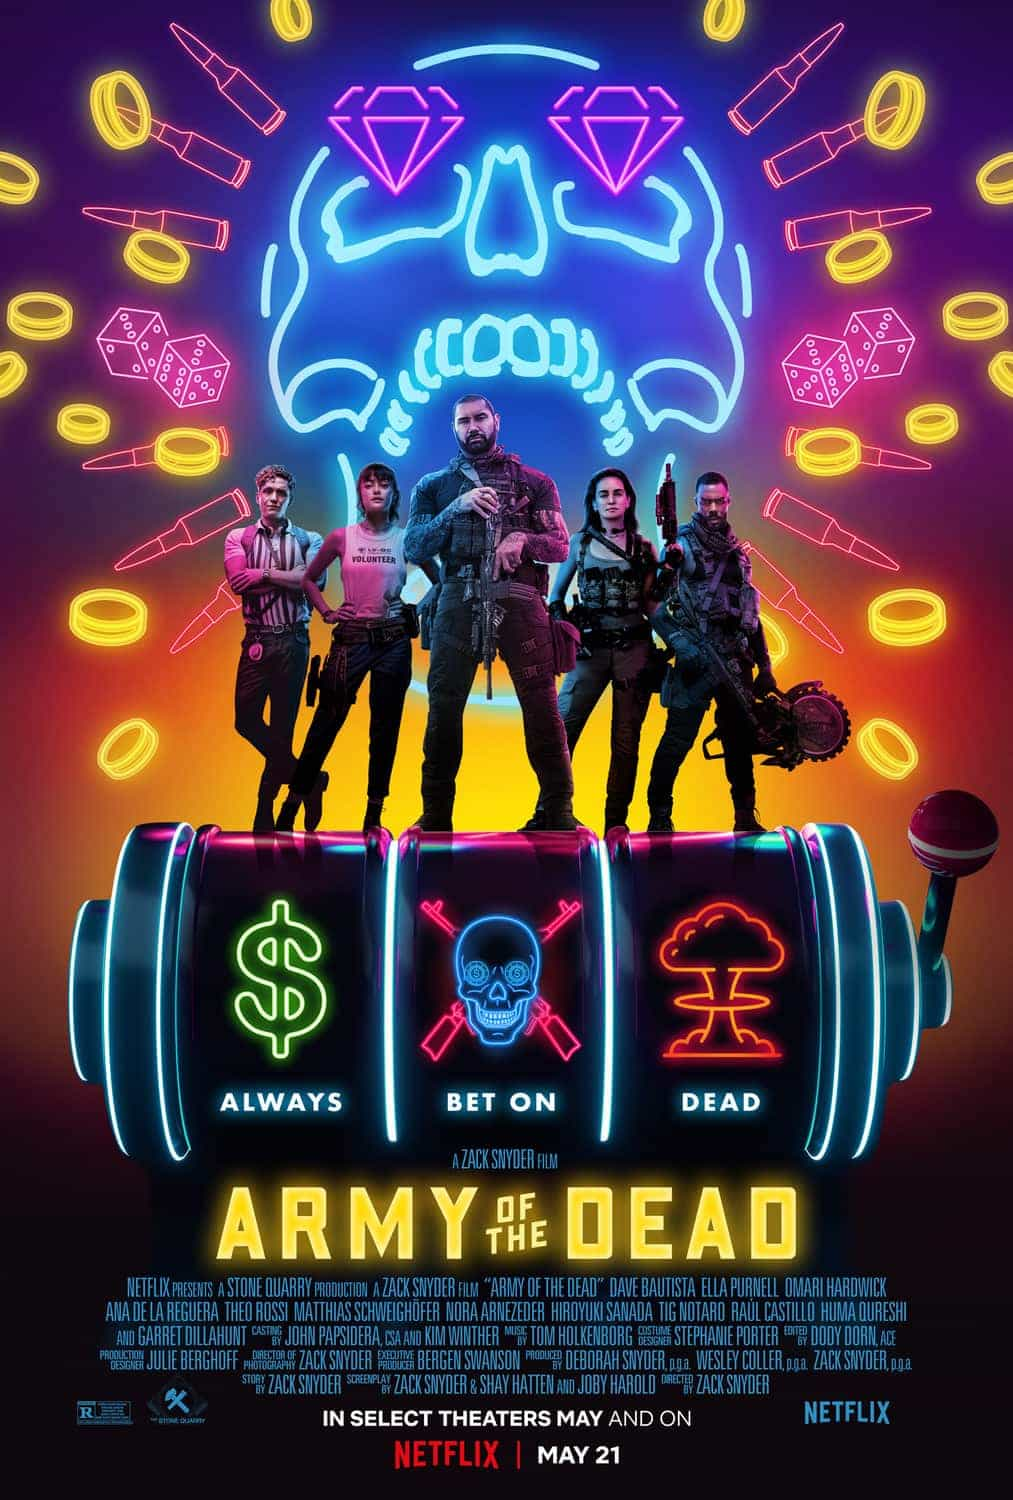 New trailer for Army Of The Dead - directed by Zack Snyder and released on Netflix May 21st